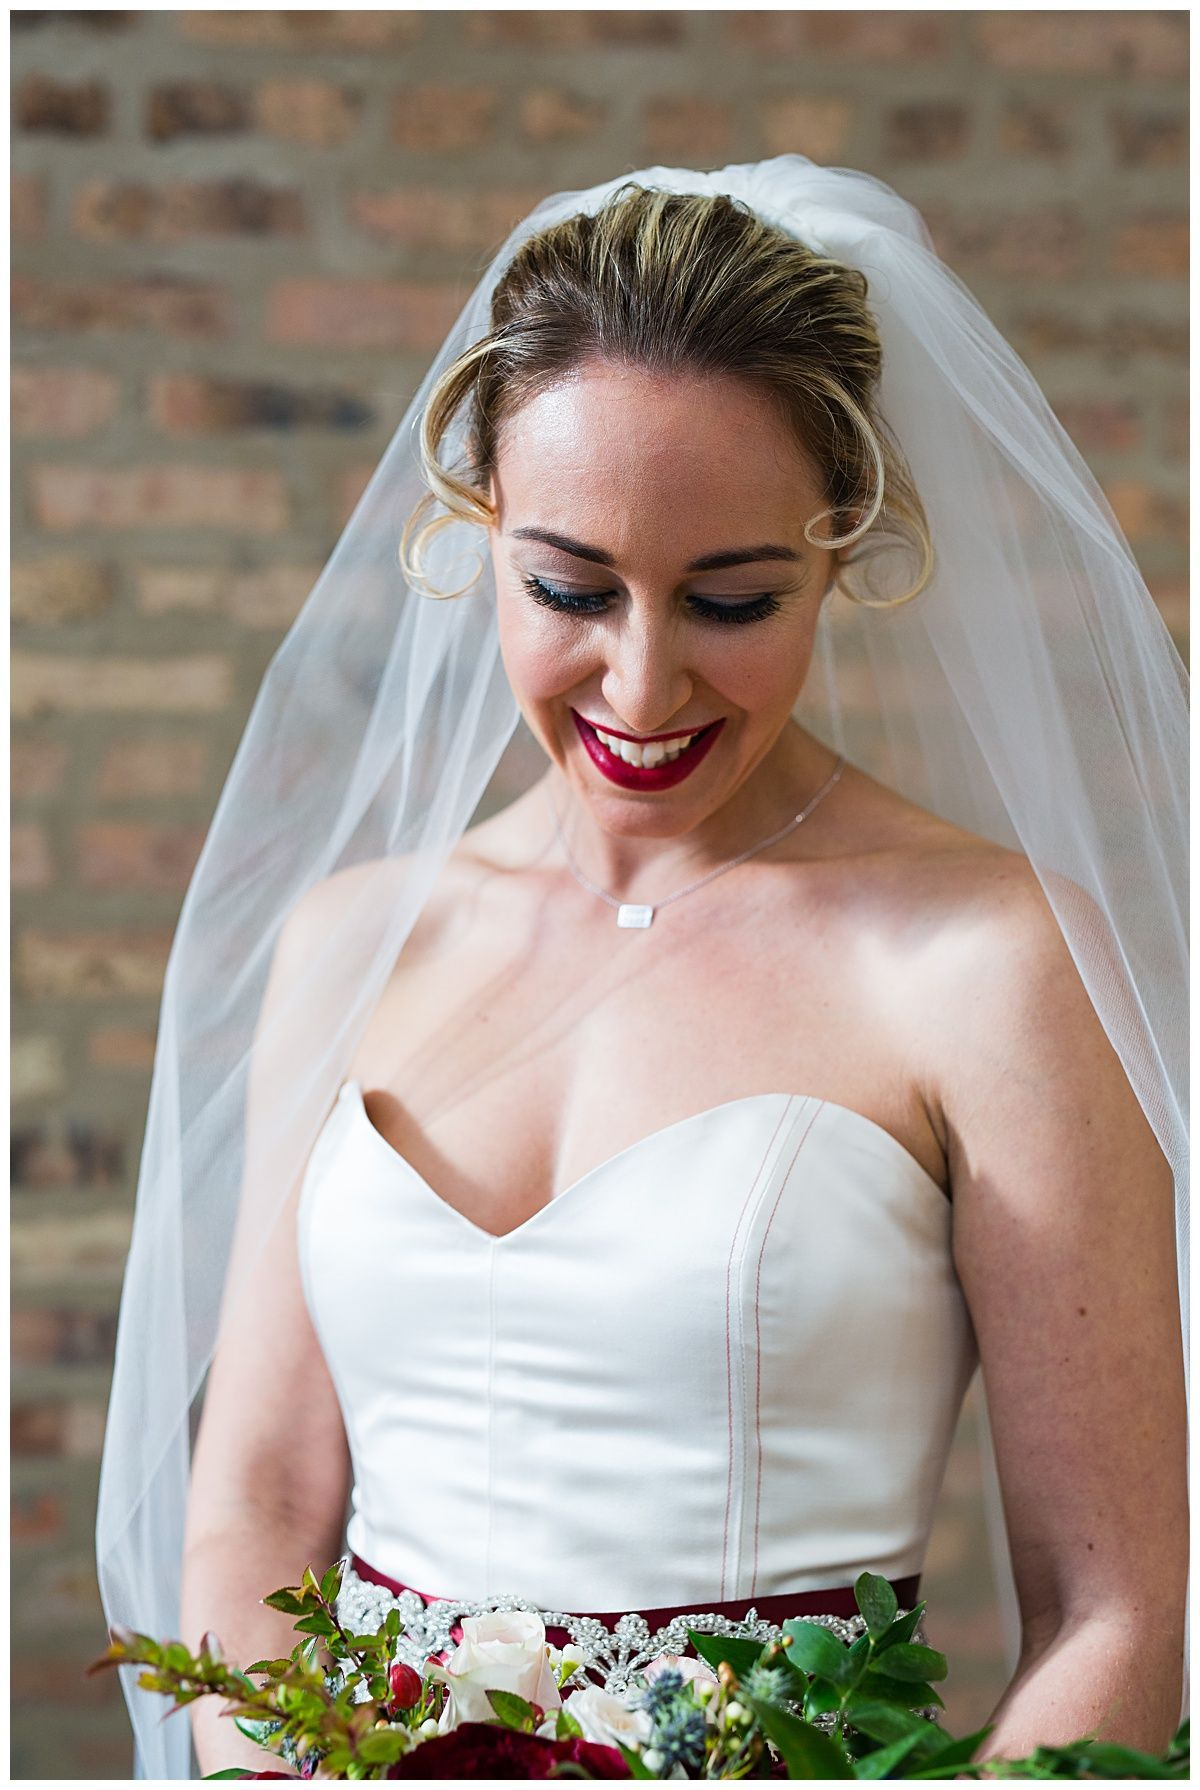 chicago cubs styled wedding wedding hair and makeup by meghana prasad chicago bridal artist www meghanaprasad com